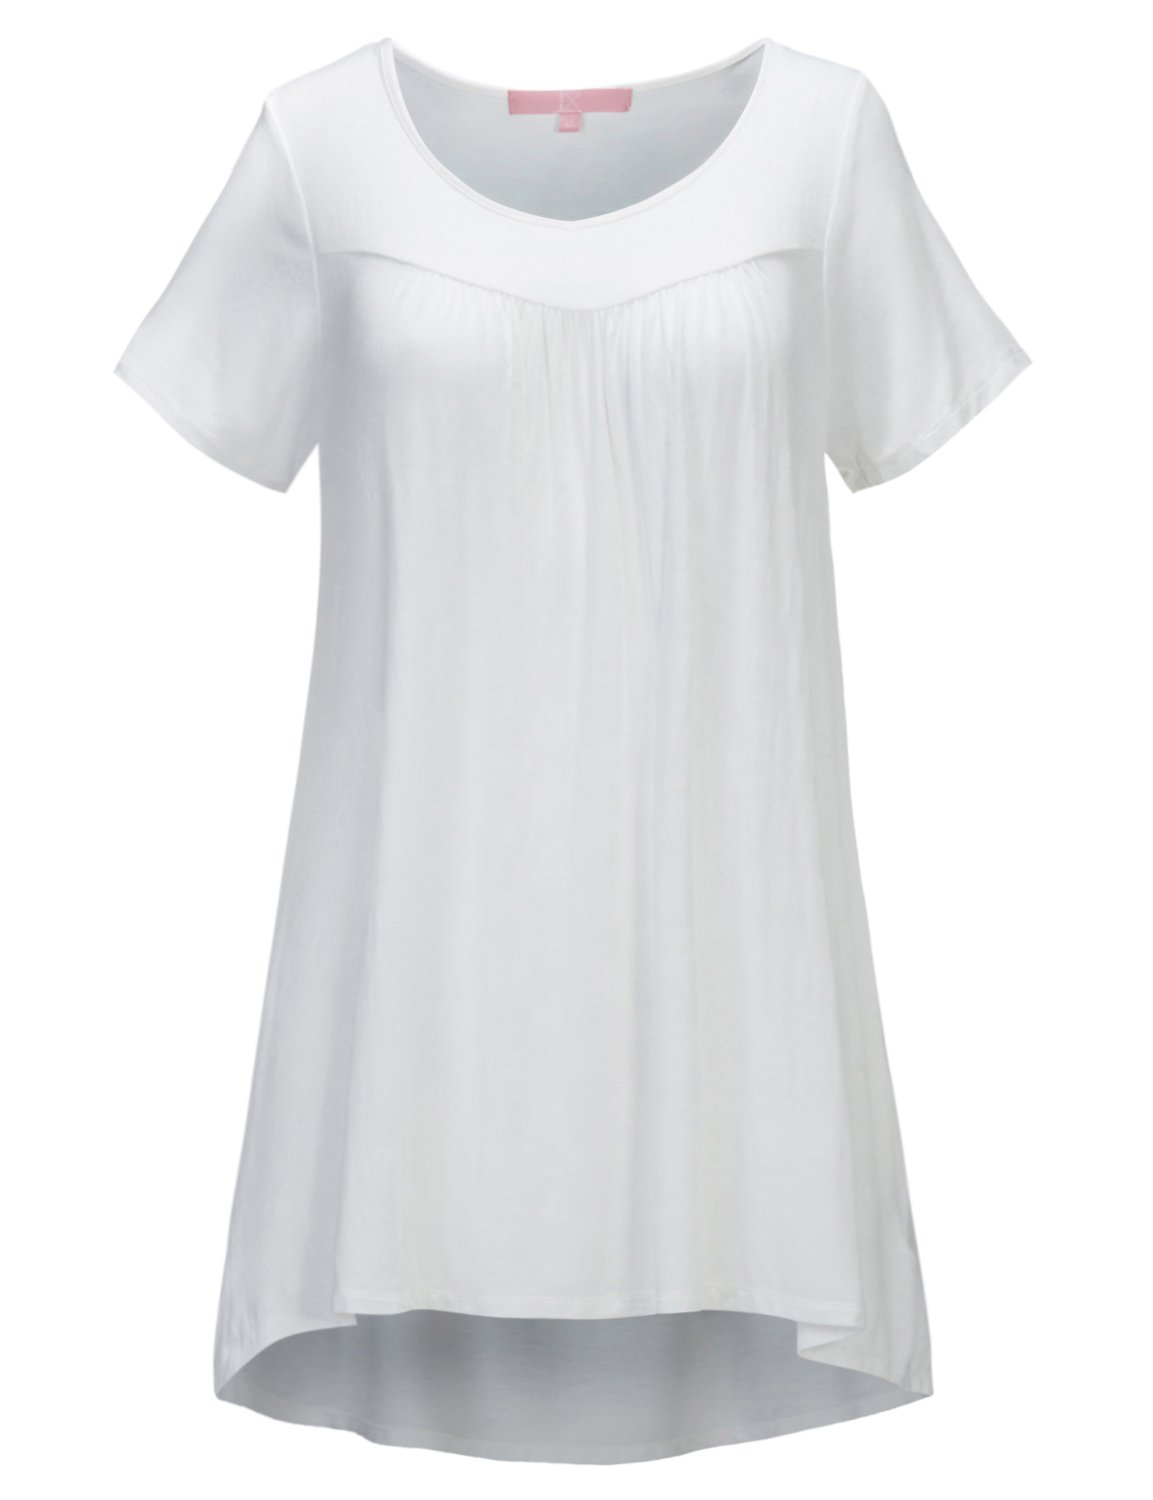 Regna X Women's Short Sleeve V Neck Loose fit Tunic Tops for Leggings White XL